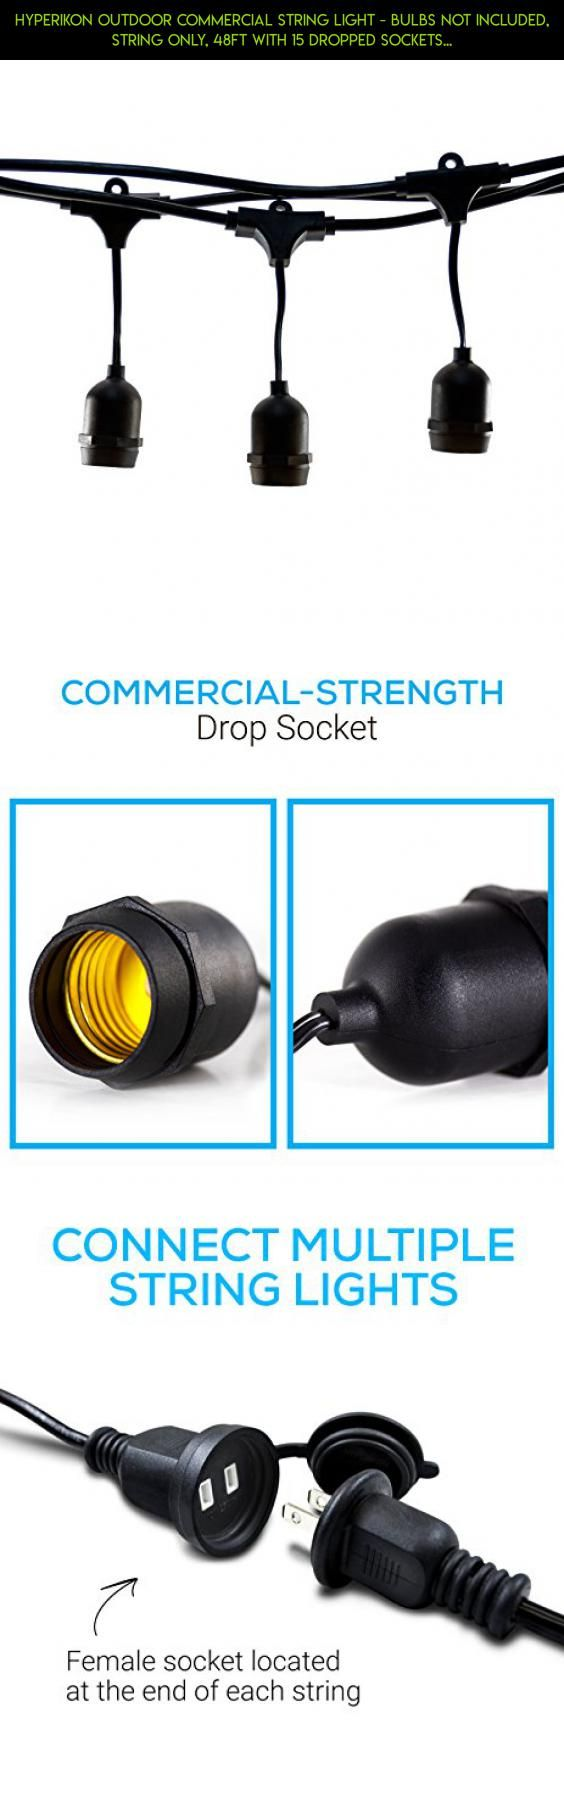 Hyperikon Outdoor Commercial String Light - Bulbs Not Included, String Only, 48ft with 15 Dropped Sockets - Weatherproof String Light, Great for Patio, Backyard, Garden, Wedding #shopping #camera #plans #parts #fpv #technology #tech #prime #kit #clearance #drone #products #racing #gadgets #furniture #patio #sets